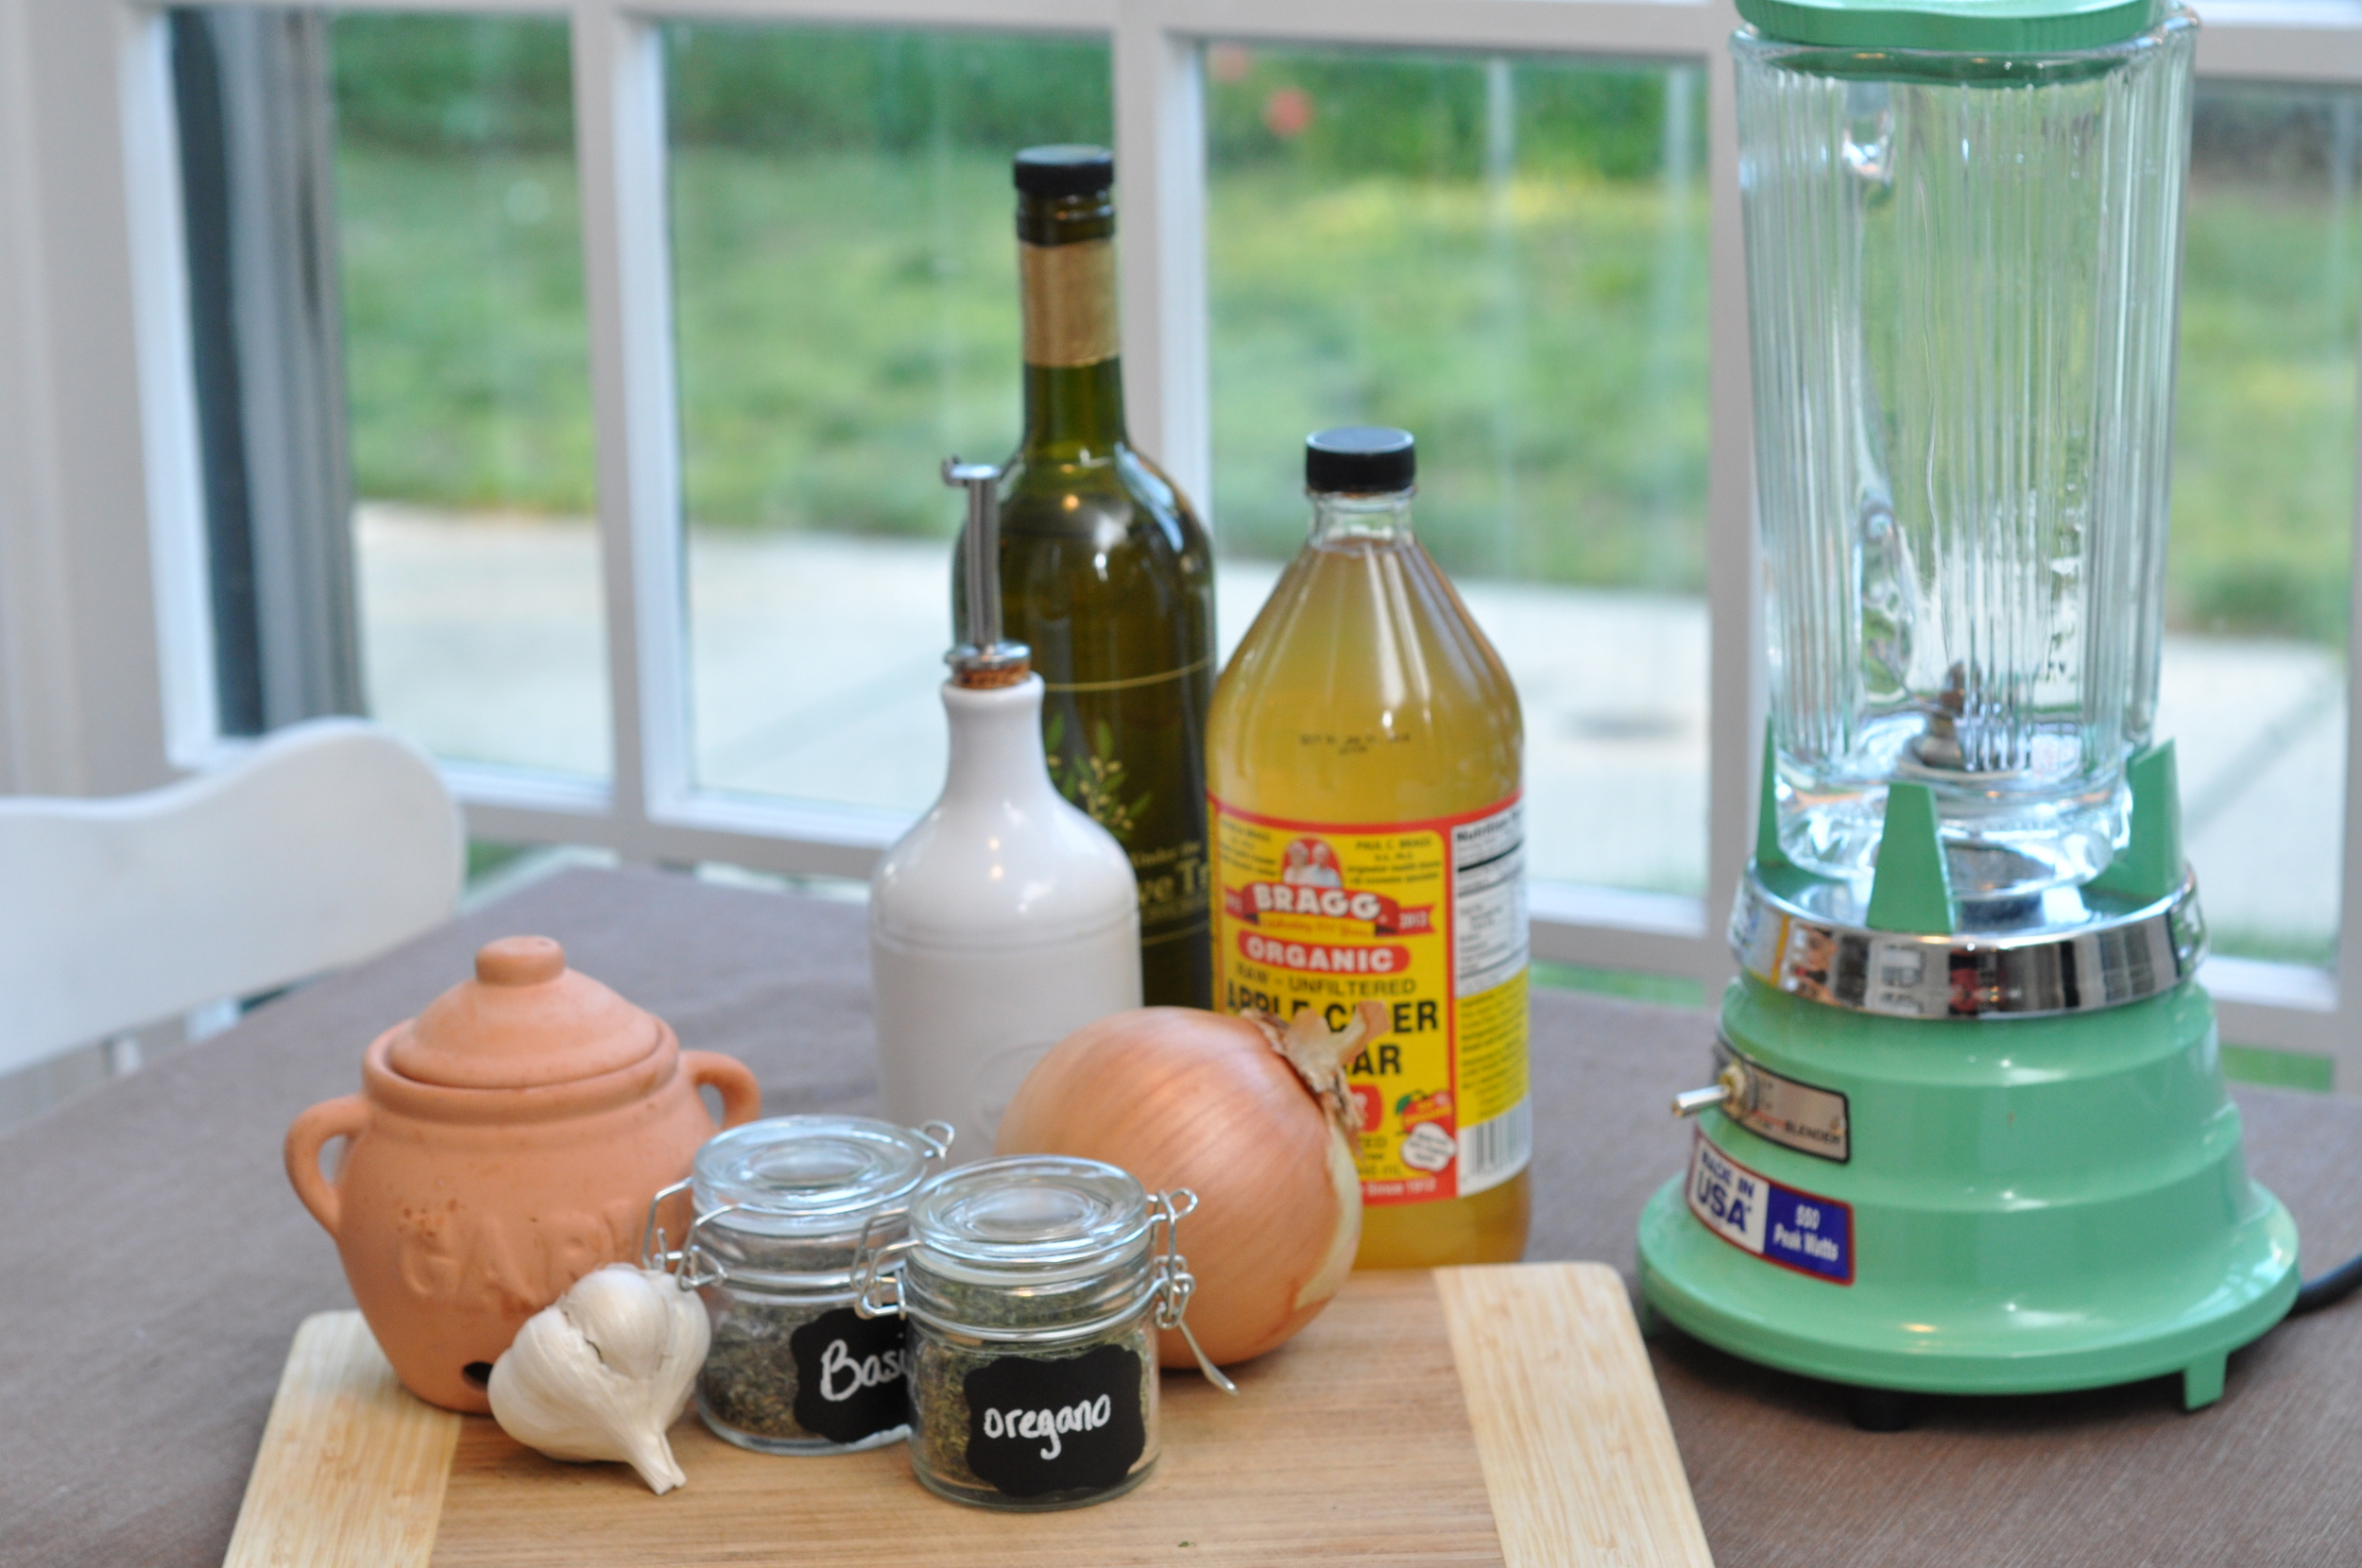 Italian Salad Dressing Ingredients